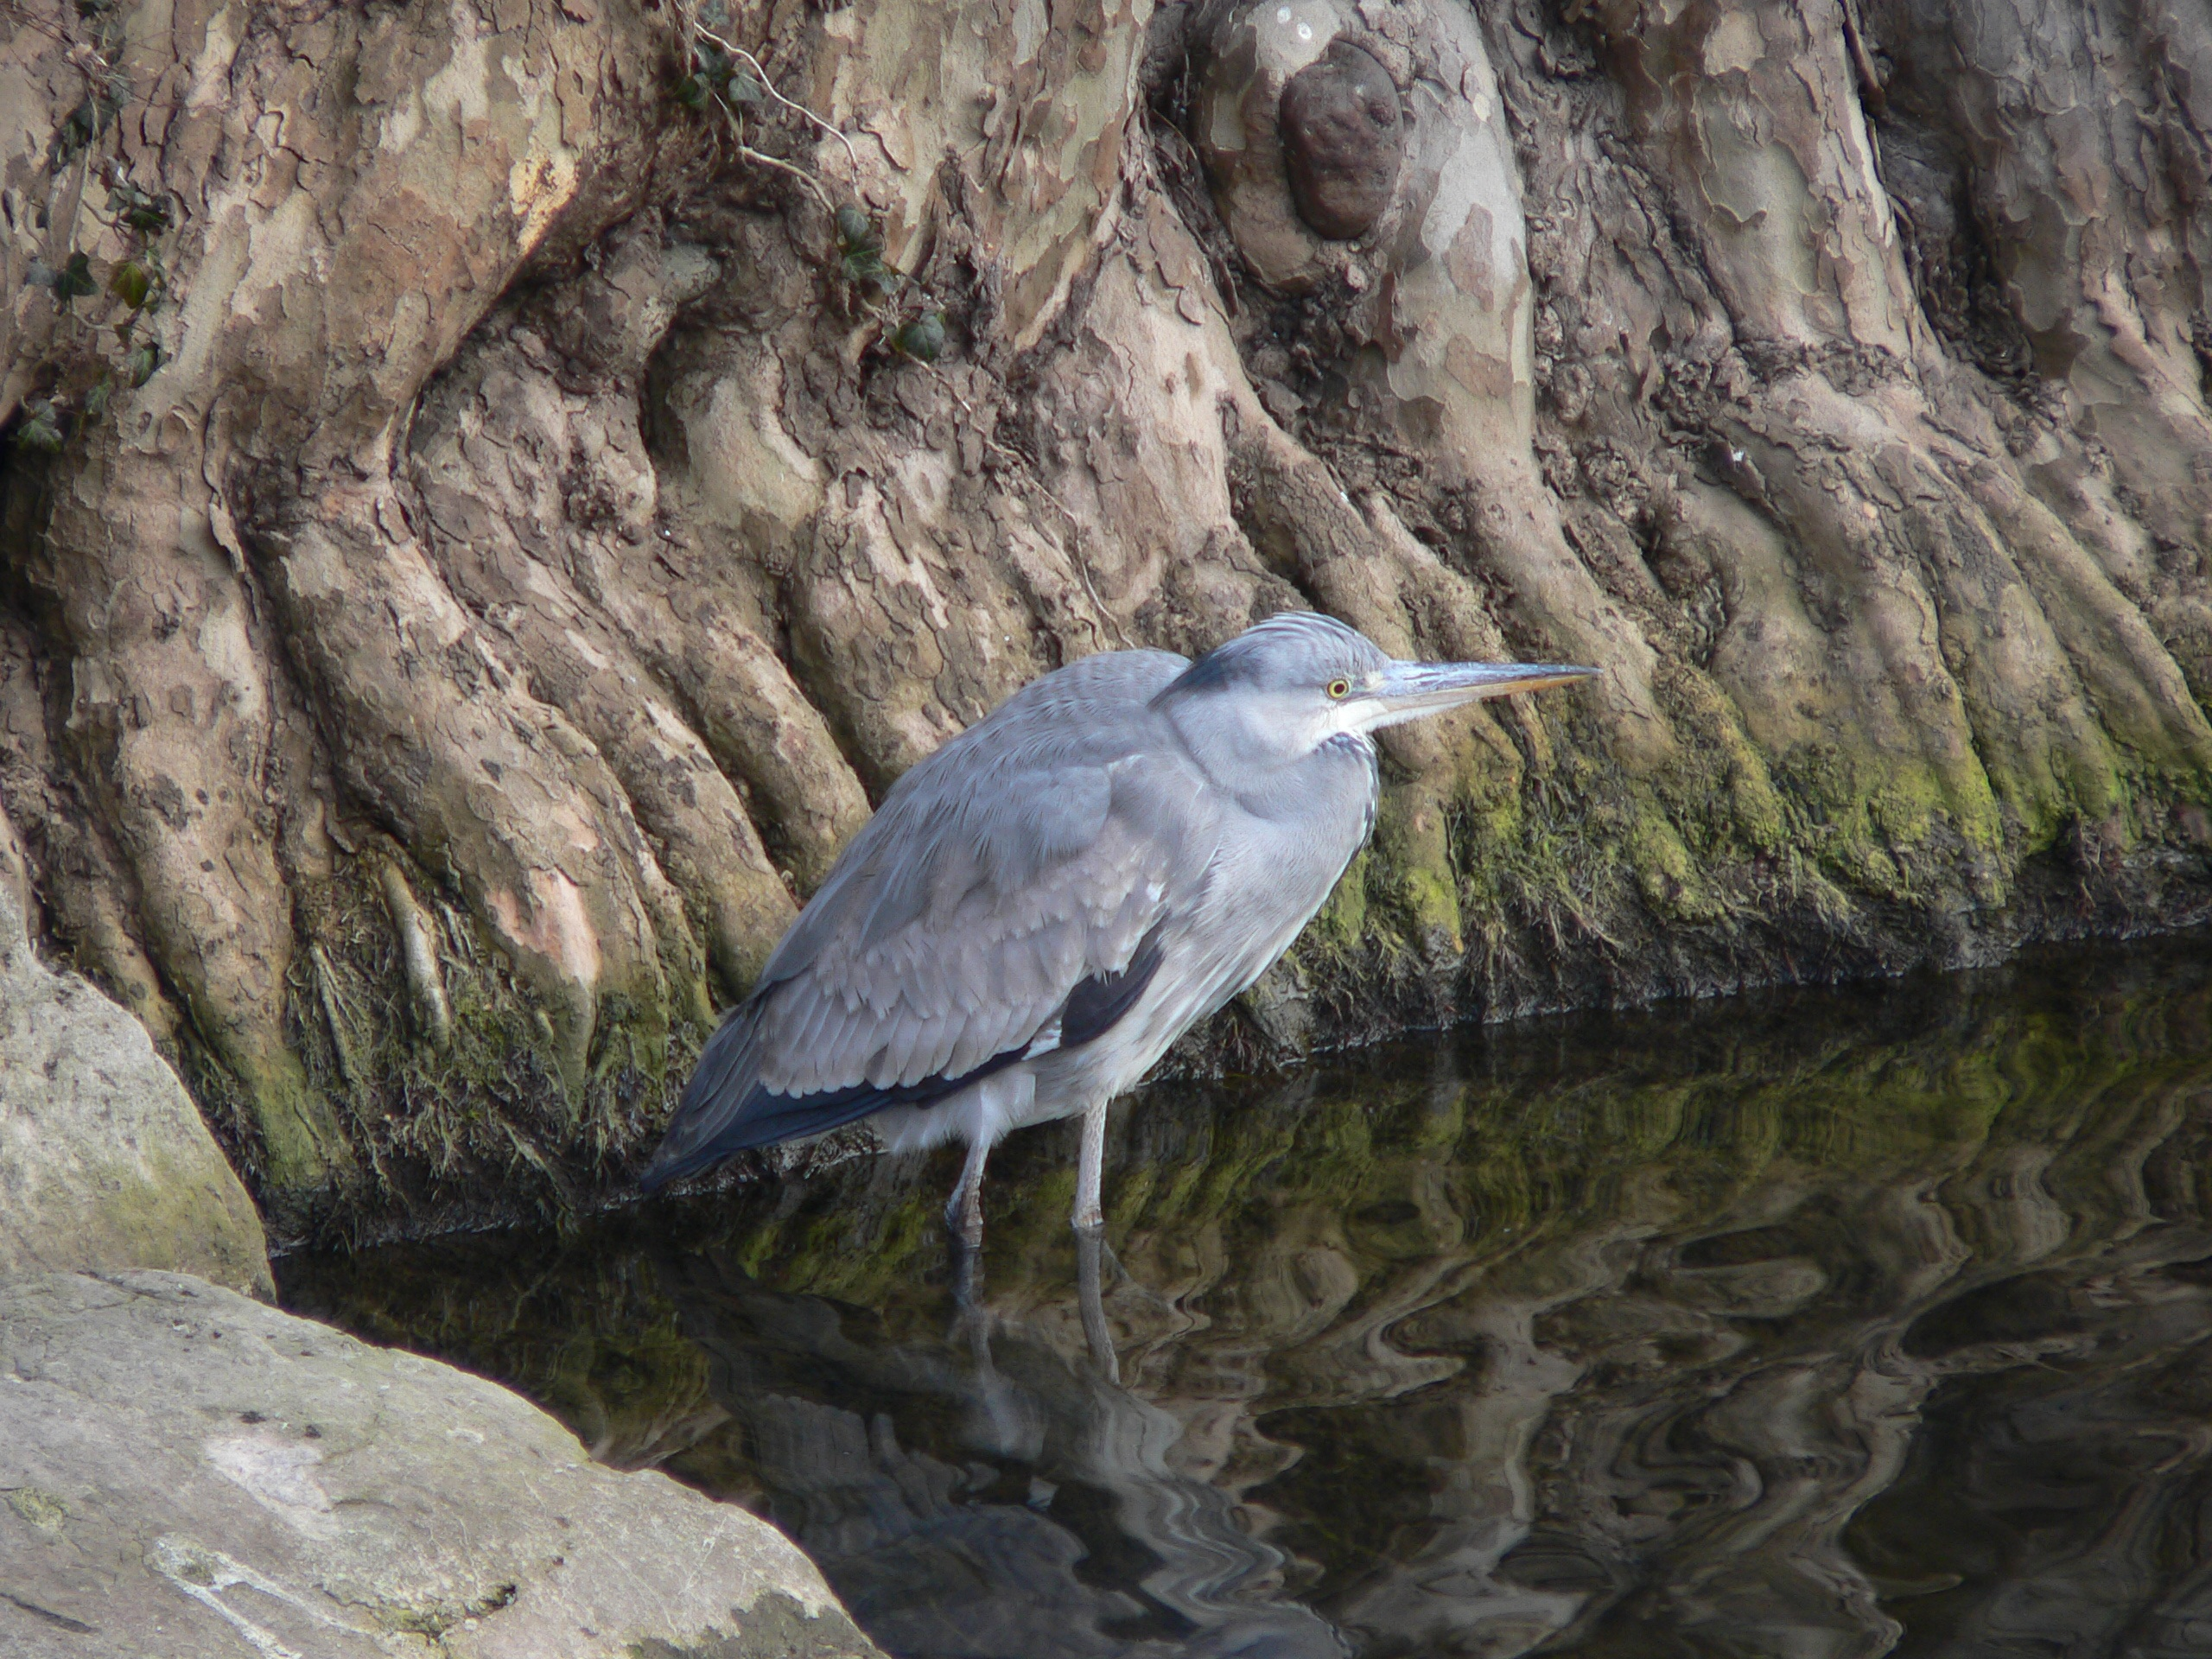 Grey heron bird